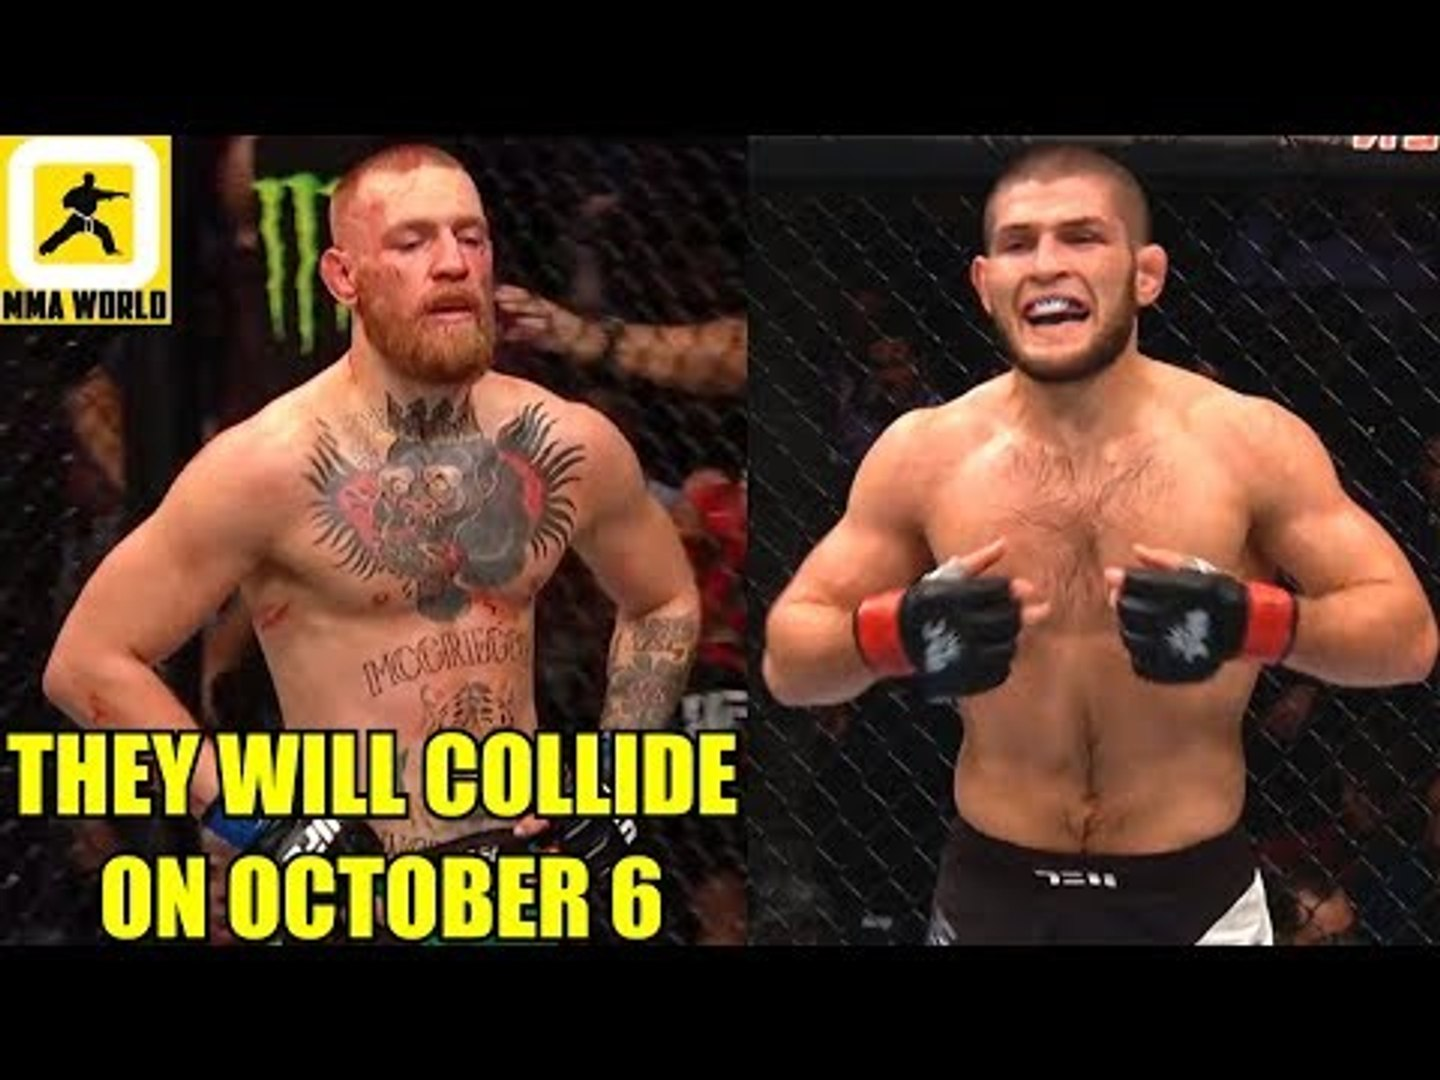 IT'S OFFICIAL! Conor McGregor and Khabib will finally meet inside the Octagon at UFC 229,Hollow